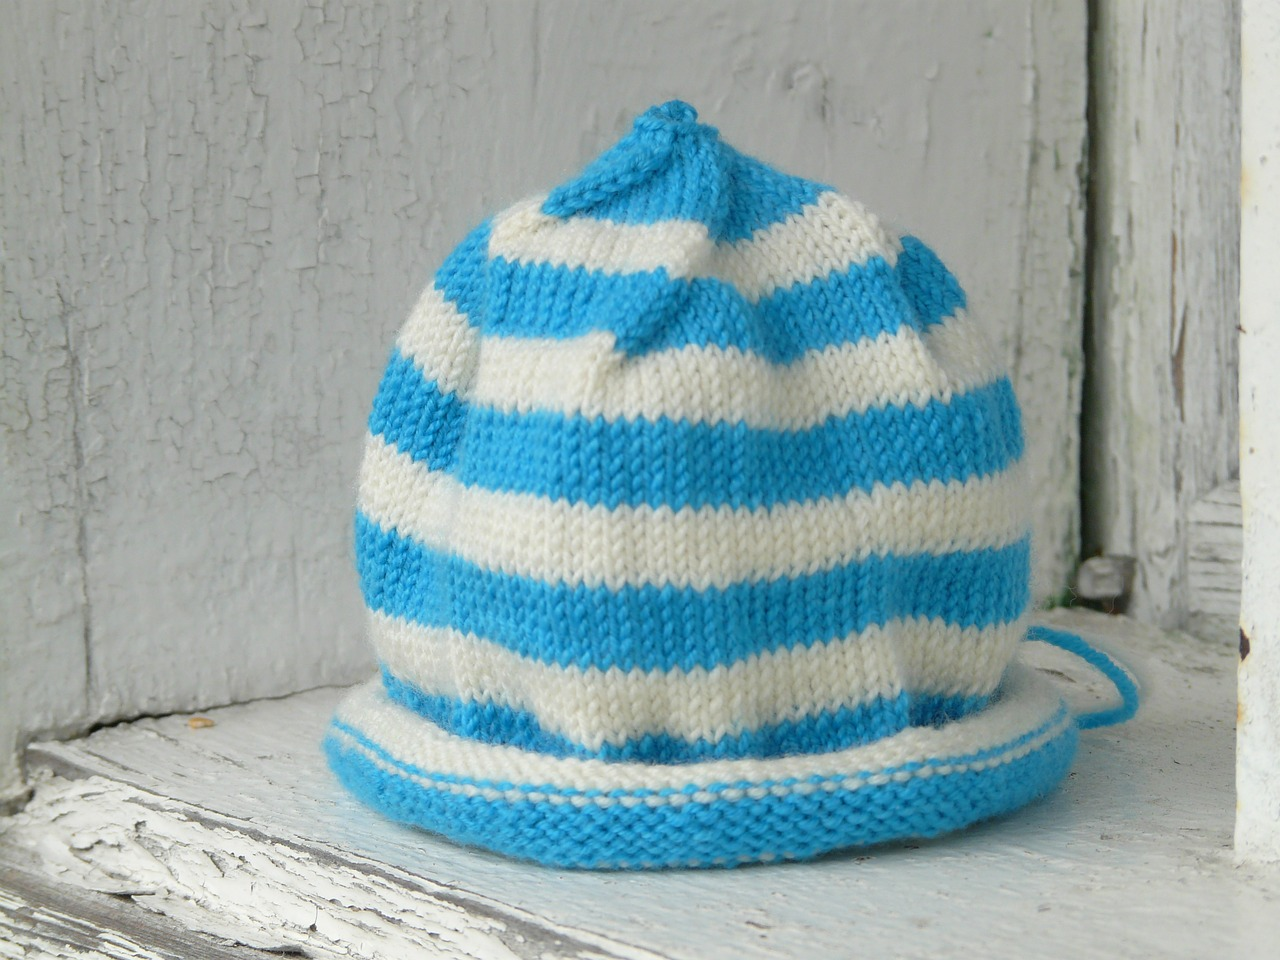 Easy Loom Knitting Hat Patterns : Loom Knitting by This Moment is Good!: EASY LOOM KNIT HAT...